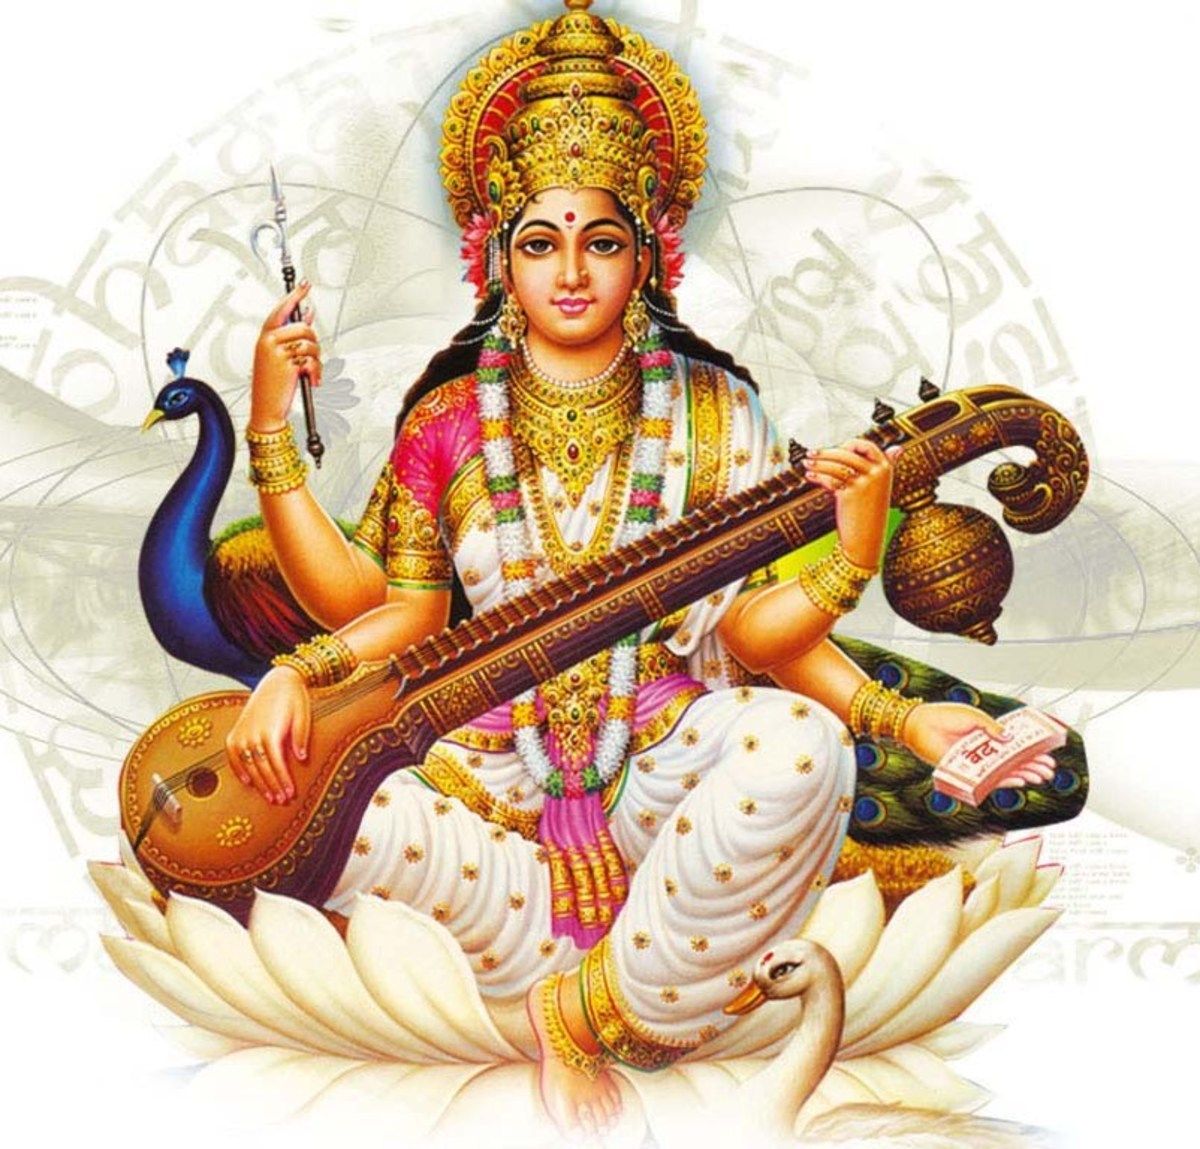 Hindu Goddess Saraswathi ( purity, learning)  seated on a white lotus.